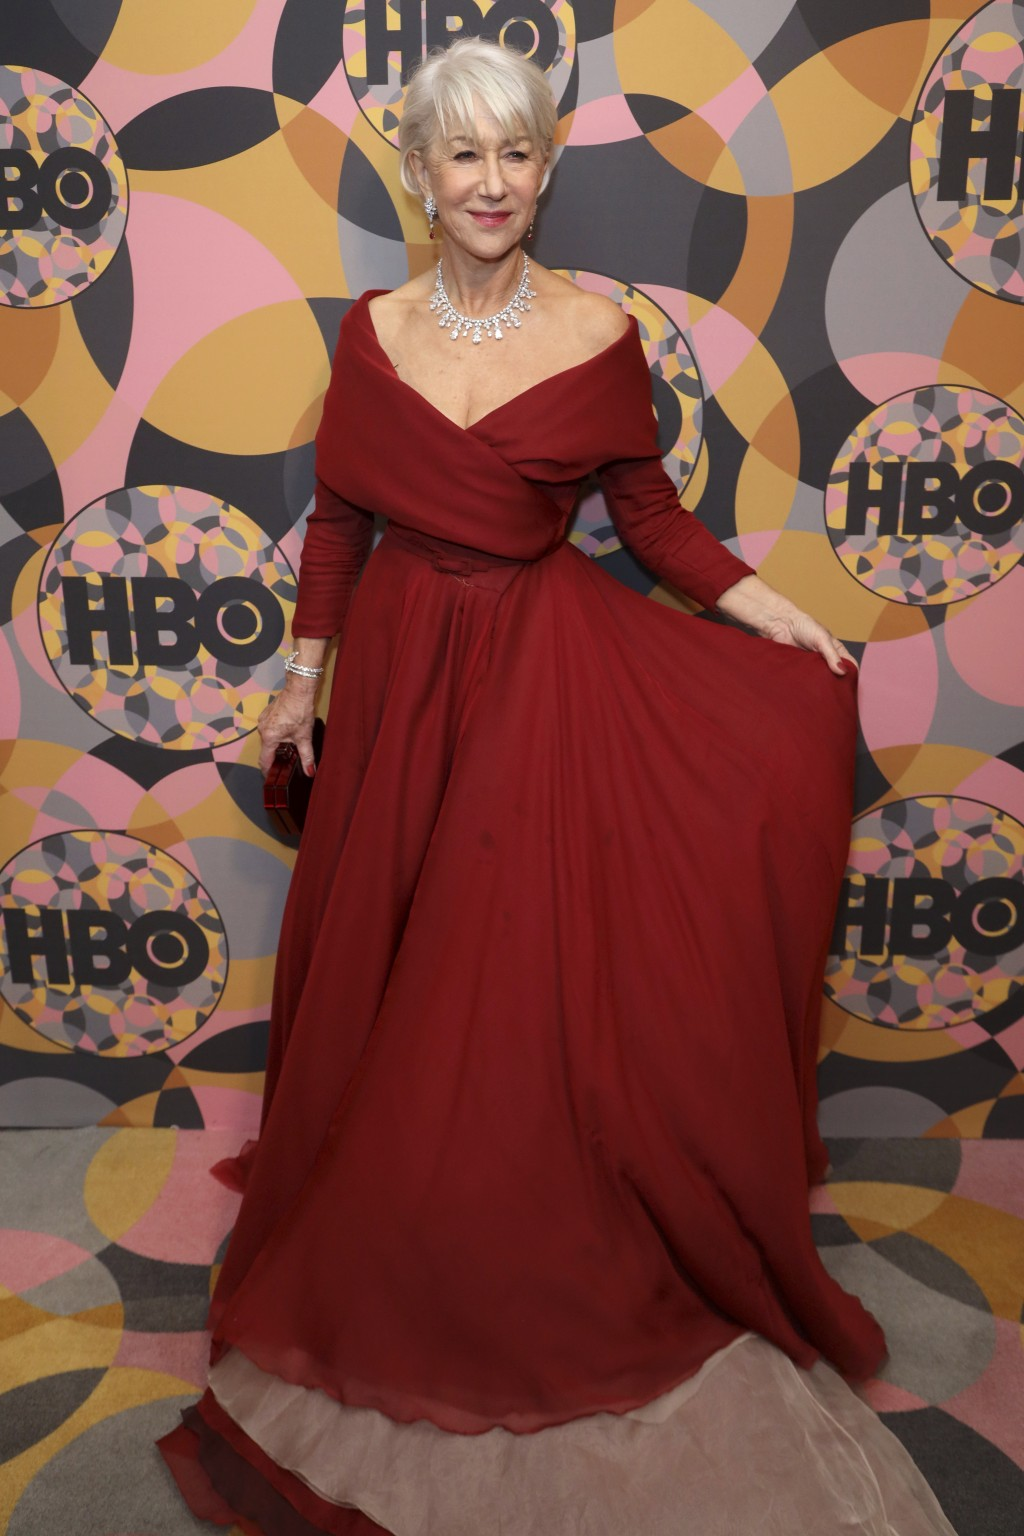 Helen Mirren arrives at the HBO Golden Globes afterparty at the Beverly Hilton Hotel on Sunday, Jan. 5, 2020, in Beverly Hills, Calif. (Photo by Willy...